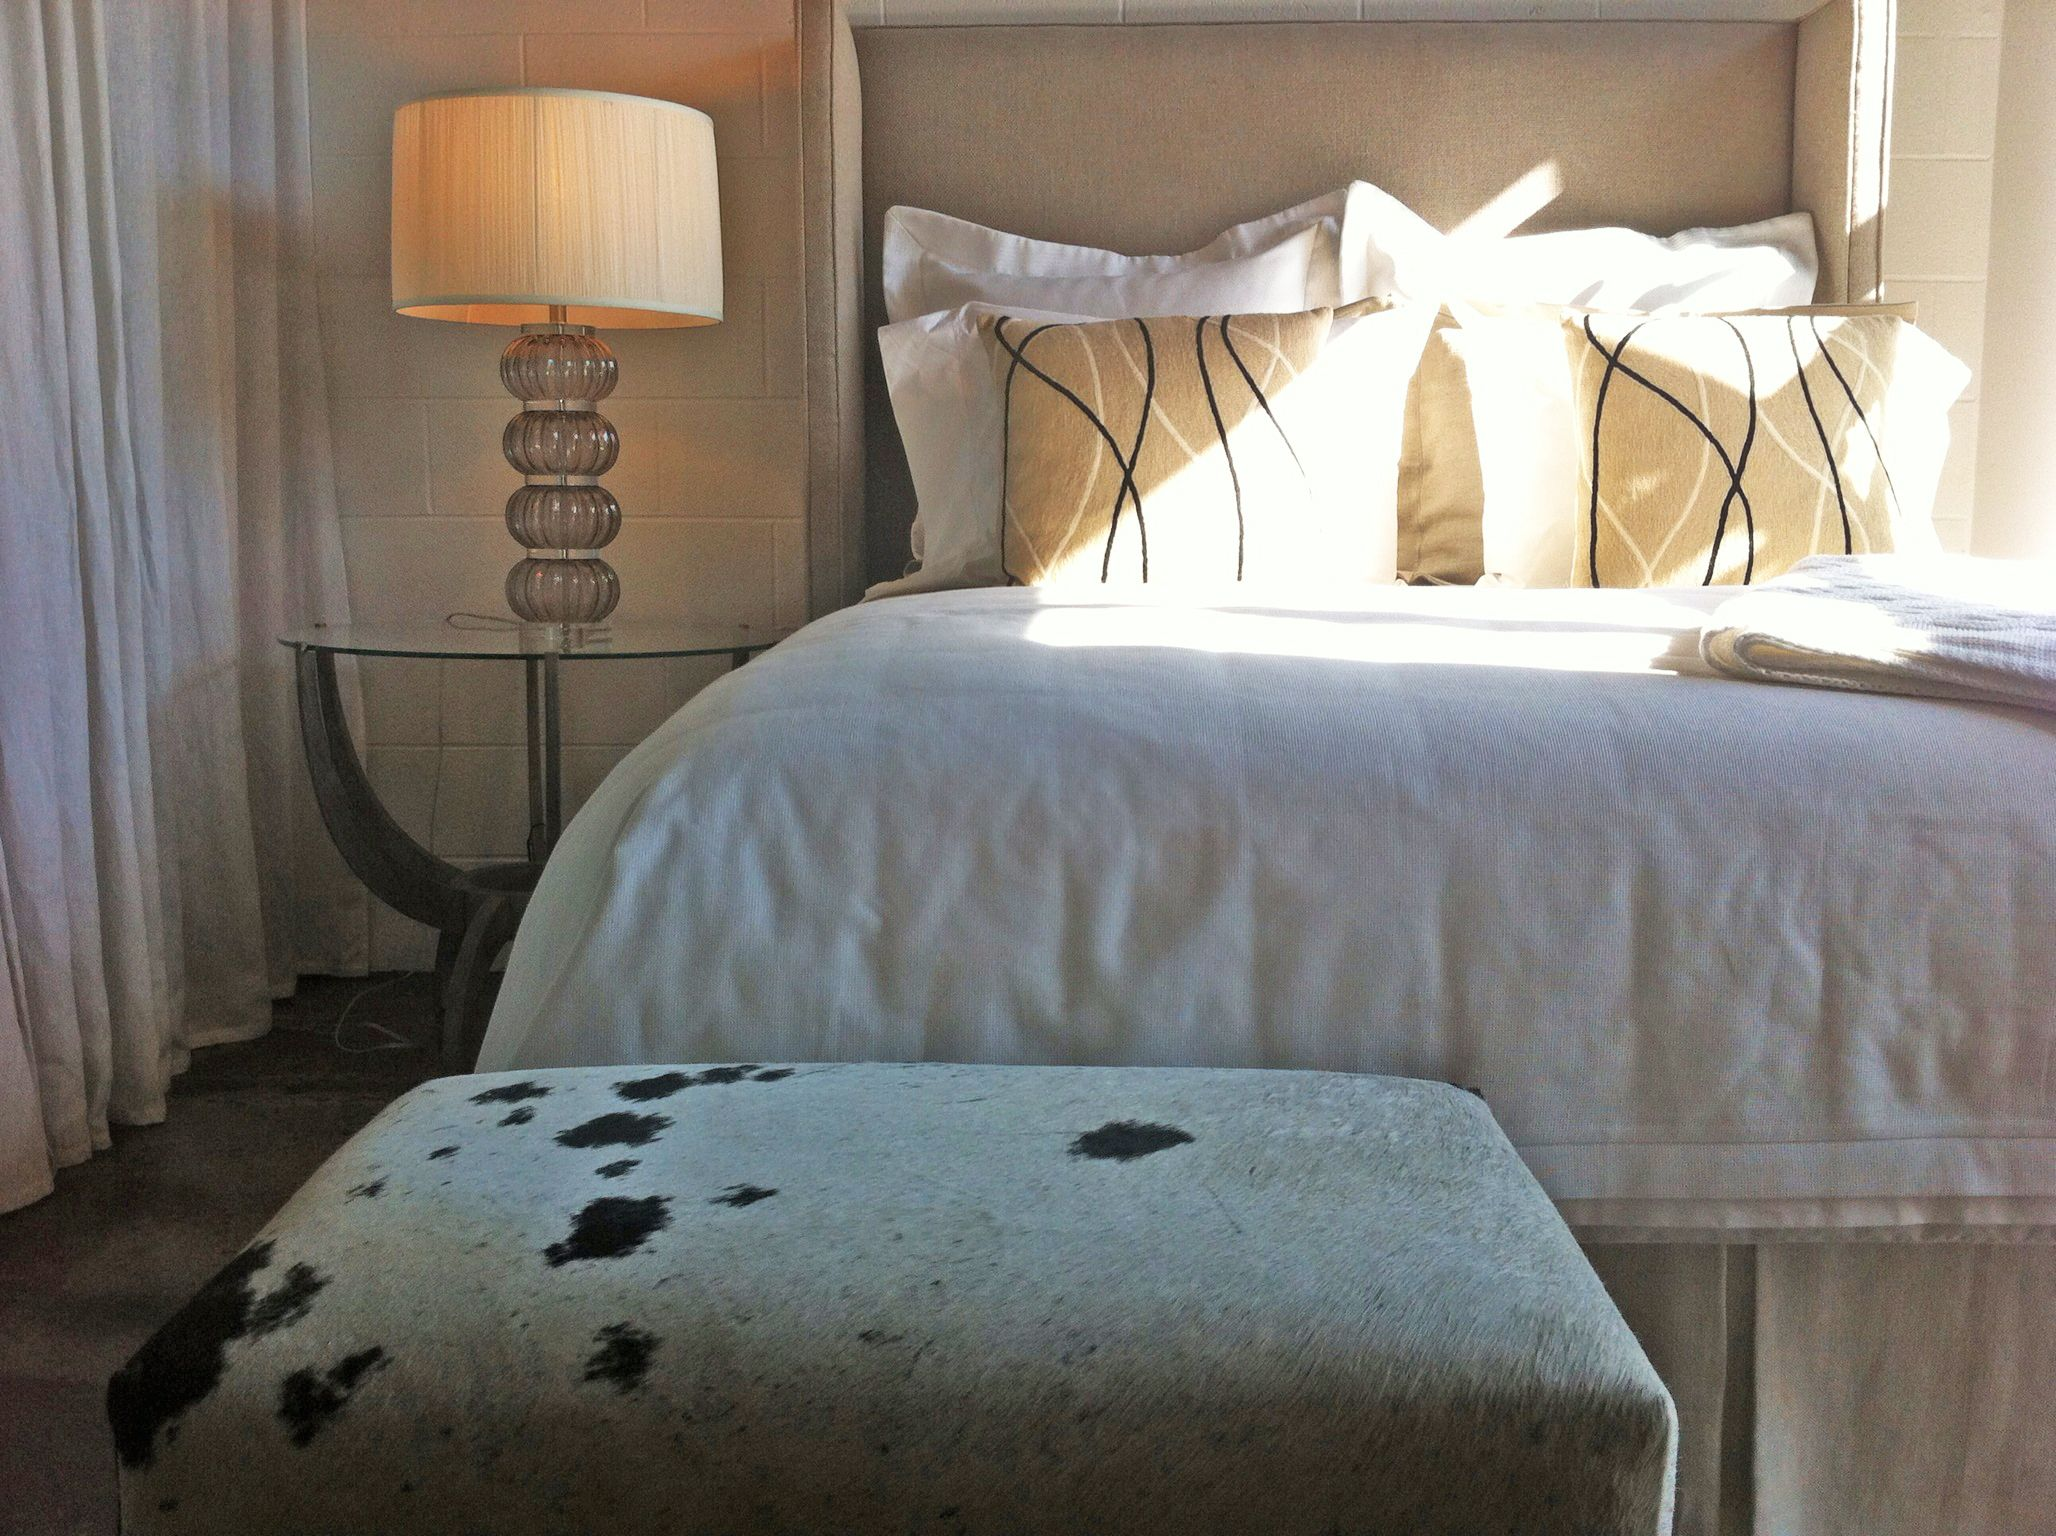 a fresh take on our Gigi bed for summer. A clean look from our Design Studio. 1403 Slocum St. Dallas TX.